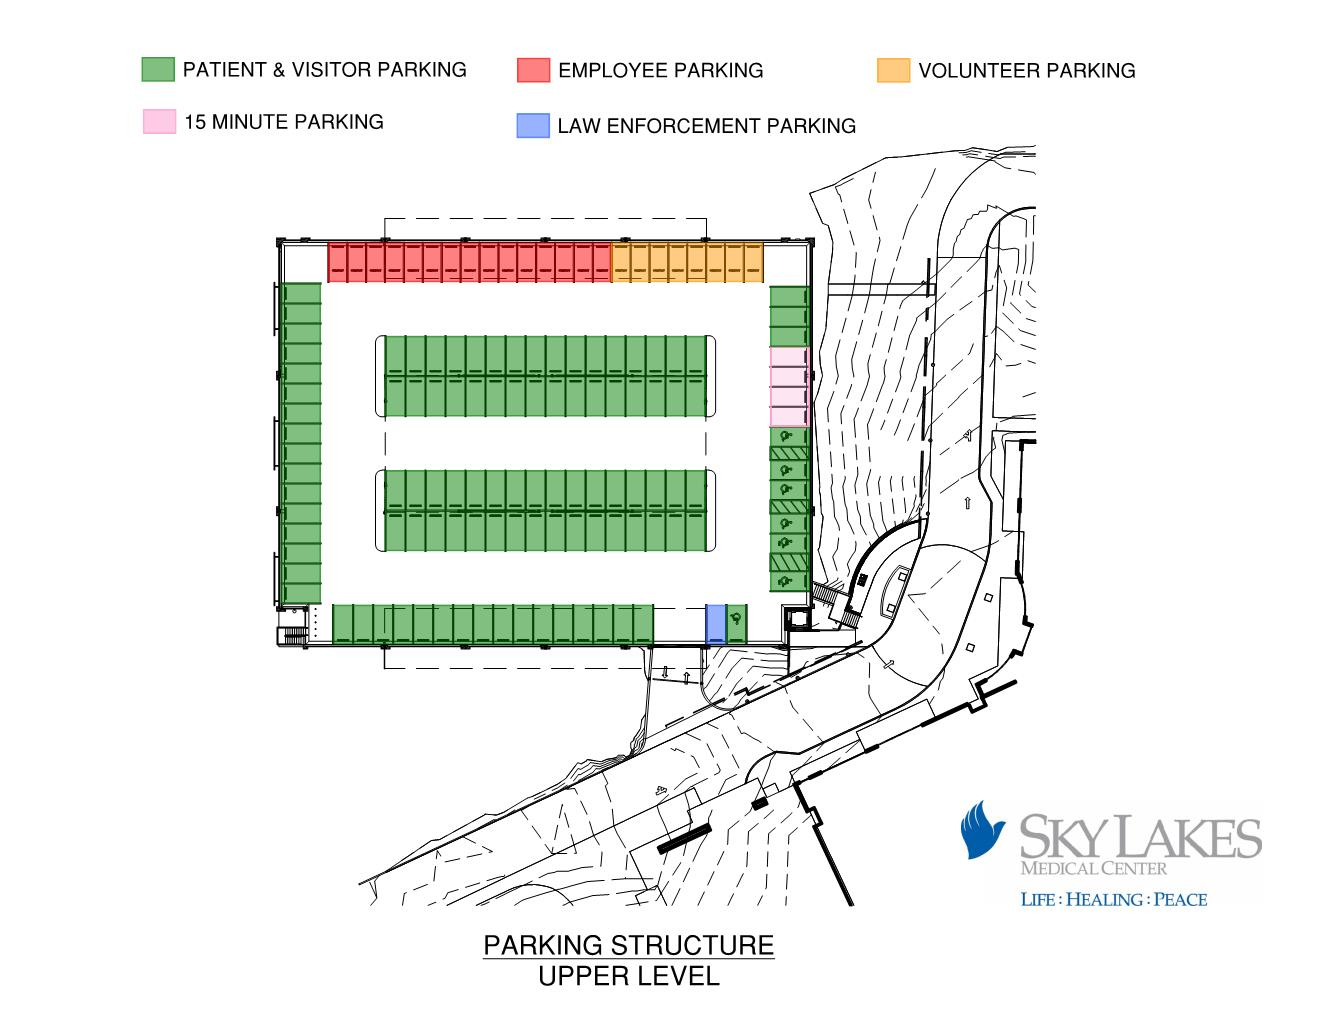 Parking schematic of the upper deck of the new parking structure at Sky Lakes Medical Center (Sky Lakes)